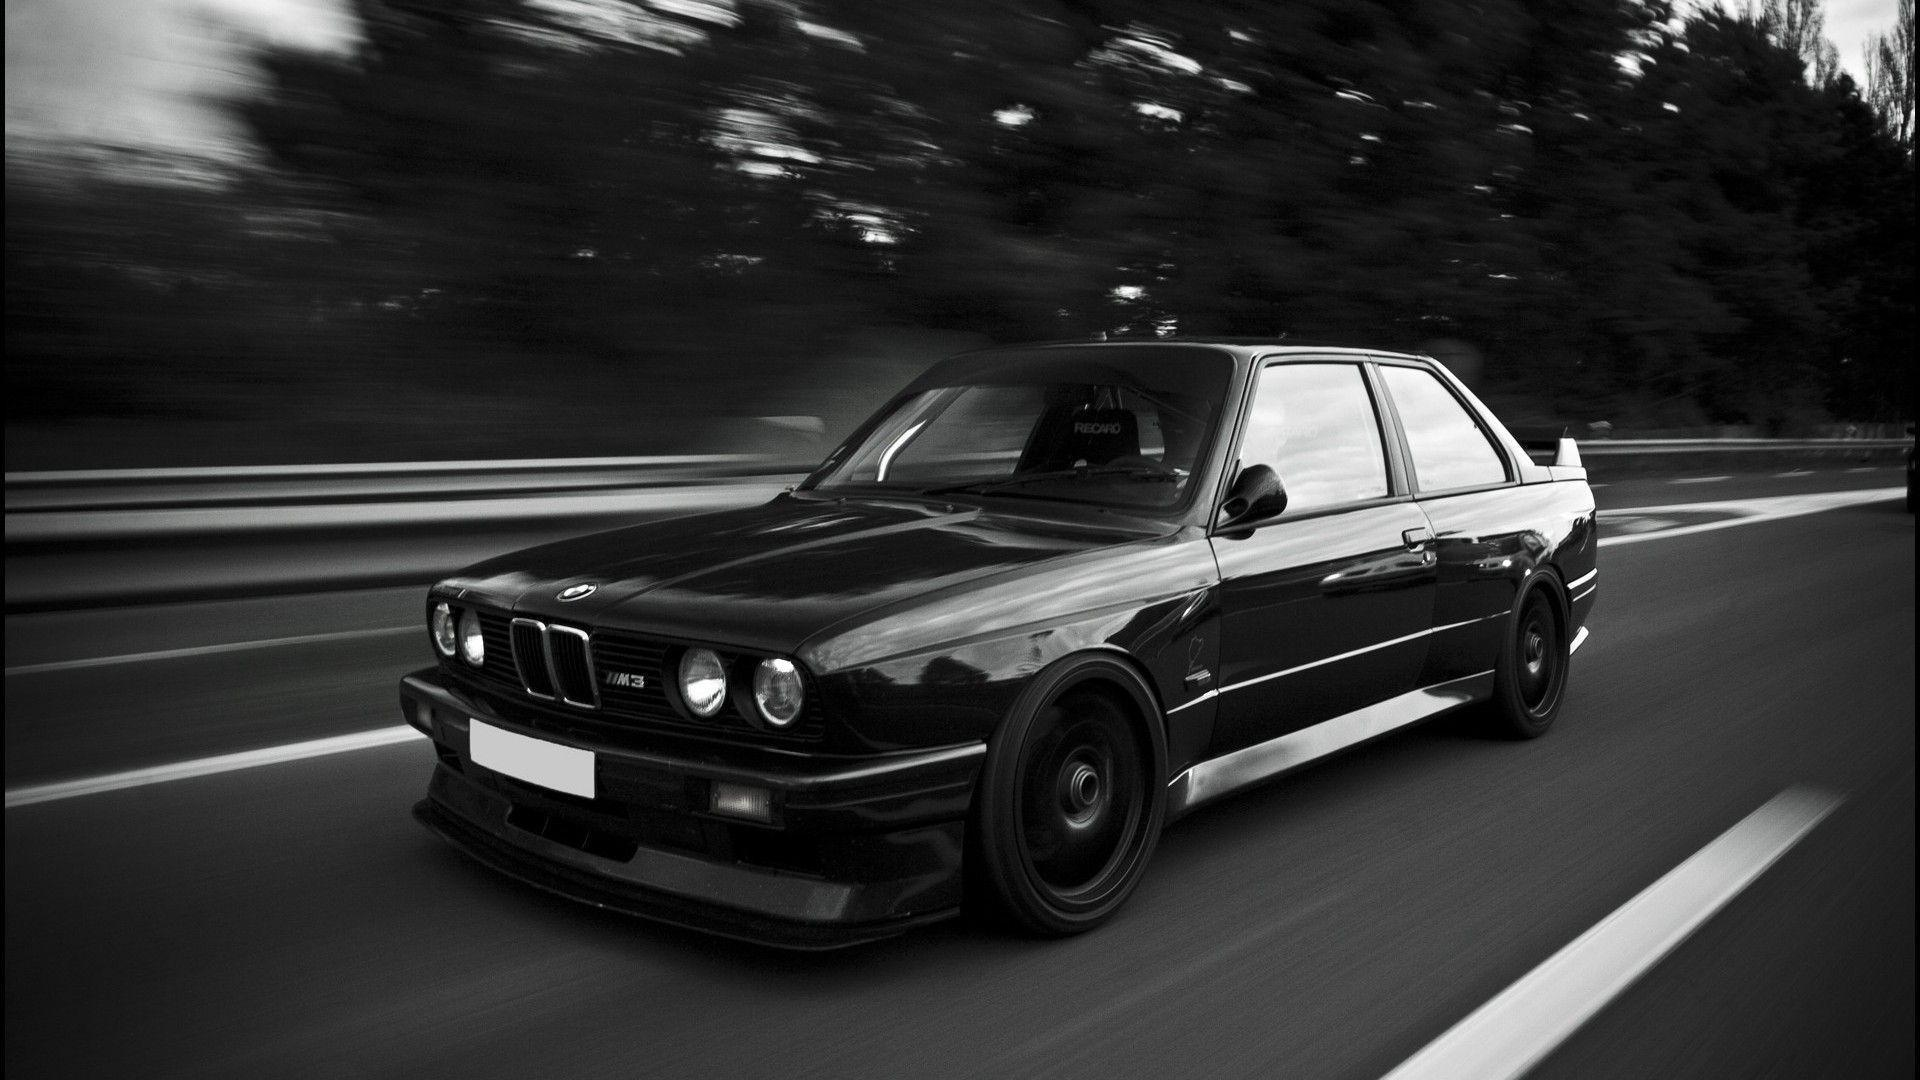 BMW E30 Wallpapers 1920x1080